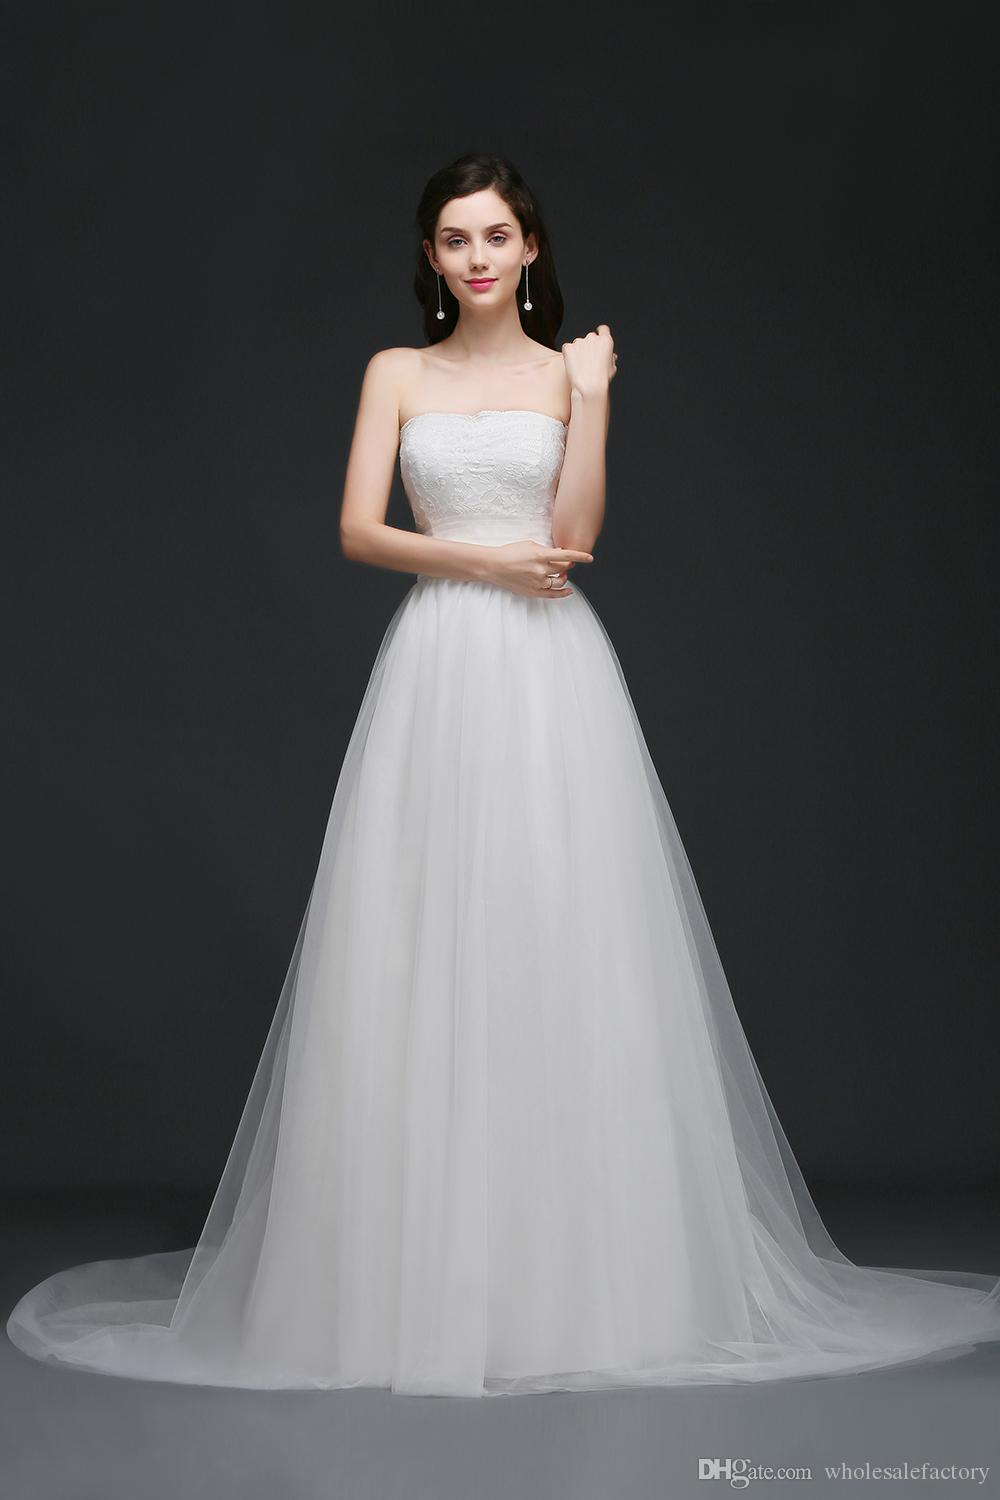 Sweet Strapless Garden Wedding Dresses Lace Top Soft Tulle Beach Wedding Gowns Summer Cheap Wedding Gowns Robe CPS762